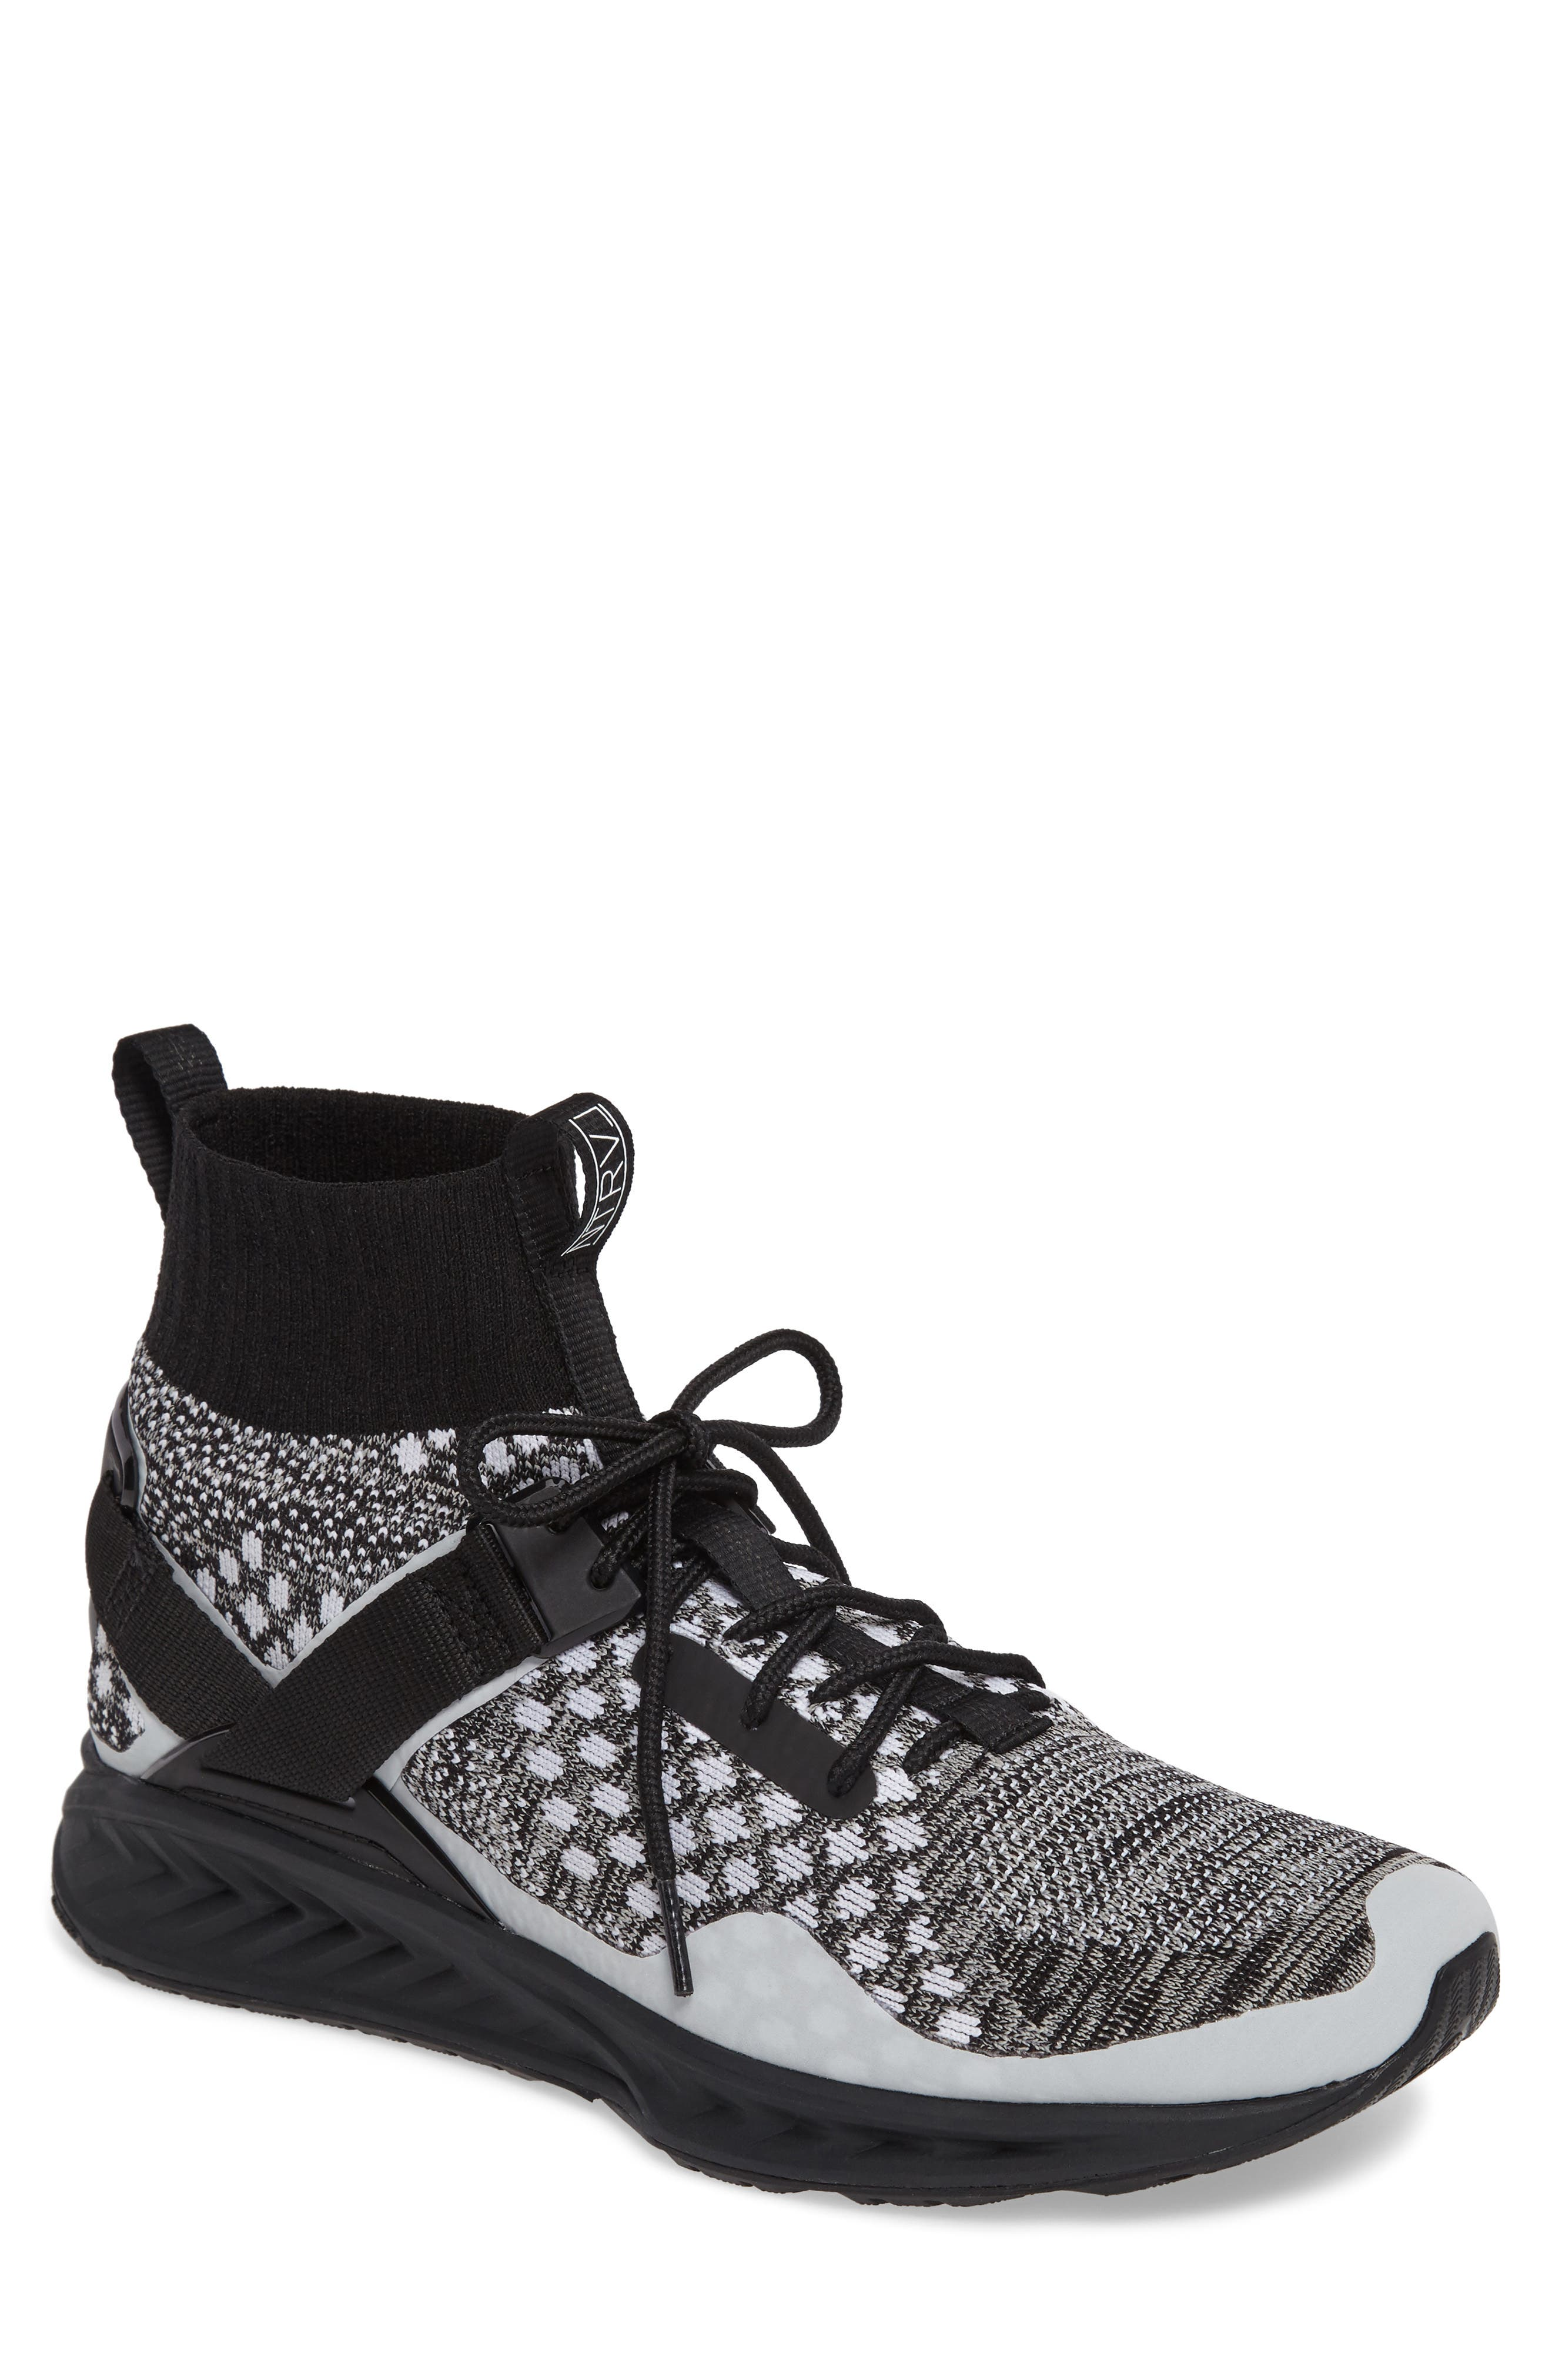 PUMA Staple Ignite Evoknit Sneaker (Men)